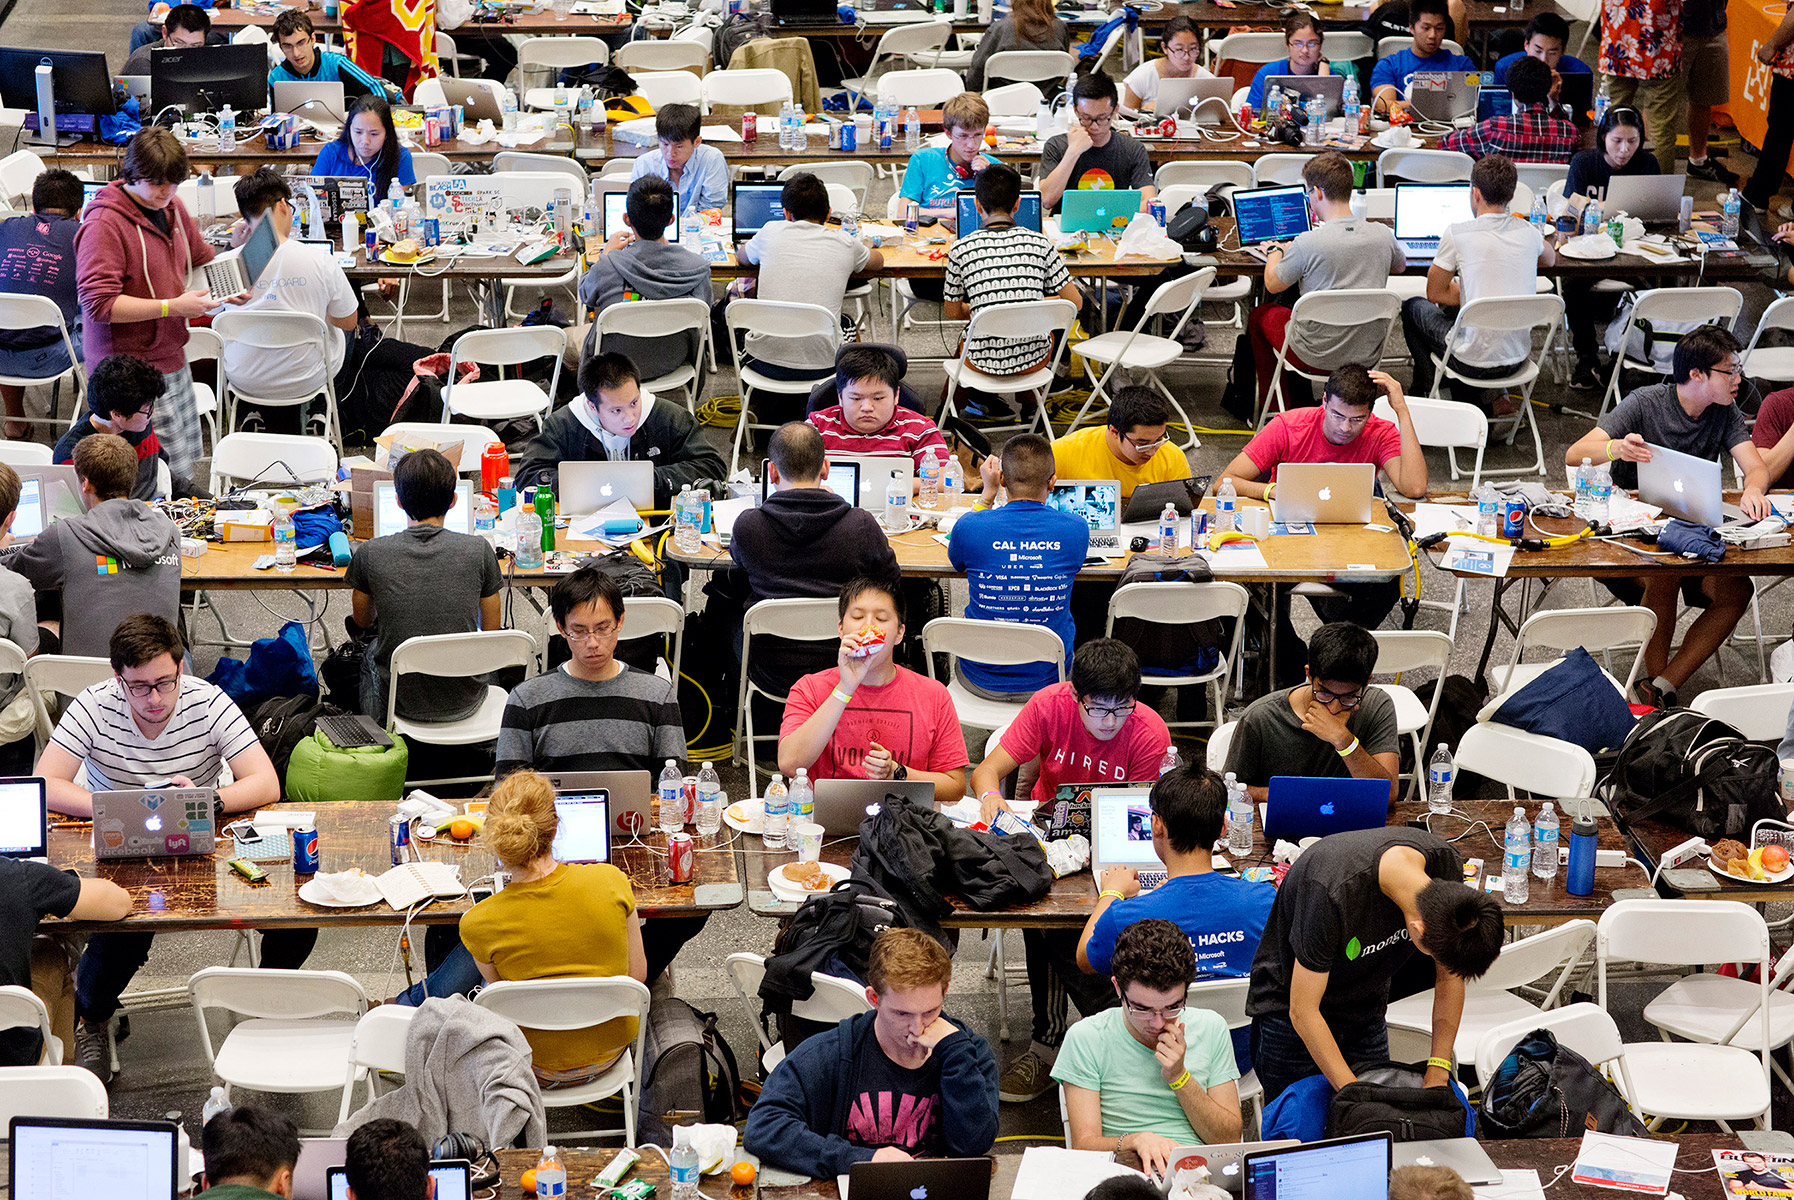 Participants in Cal Hacks 2.0, a 36-hour hackathon, work on projects inside the football stadium at the University of California, Berkeley in Berkeley, California, in October 2015. According to the event organizers, 2,071 participants attended from 143 schools and 10 countries. Hackathons are events usually lasting a few days in which computer programmers and others involved in software and hardware development collaborate on a project over a set period of time, often while competing for awards and prizes. They're an important part of the technology industry ecosystem.